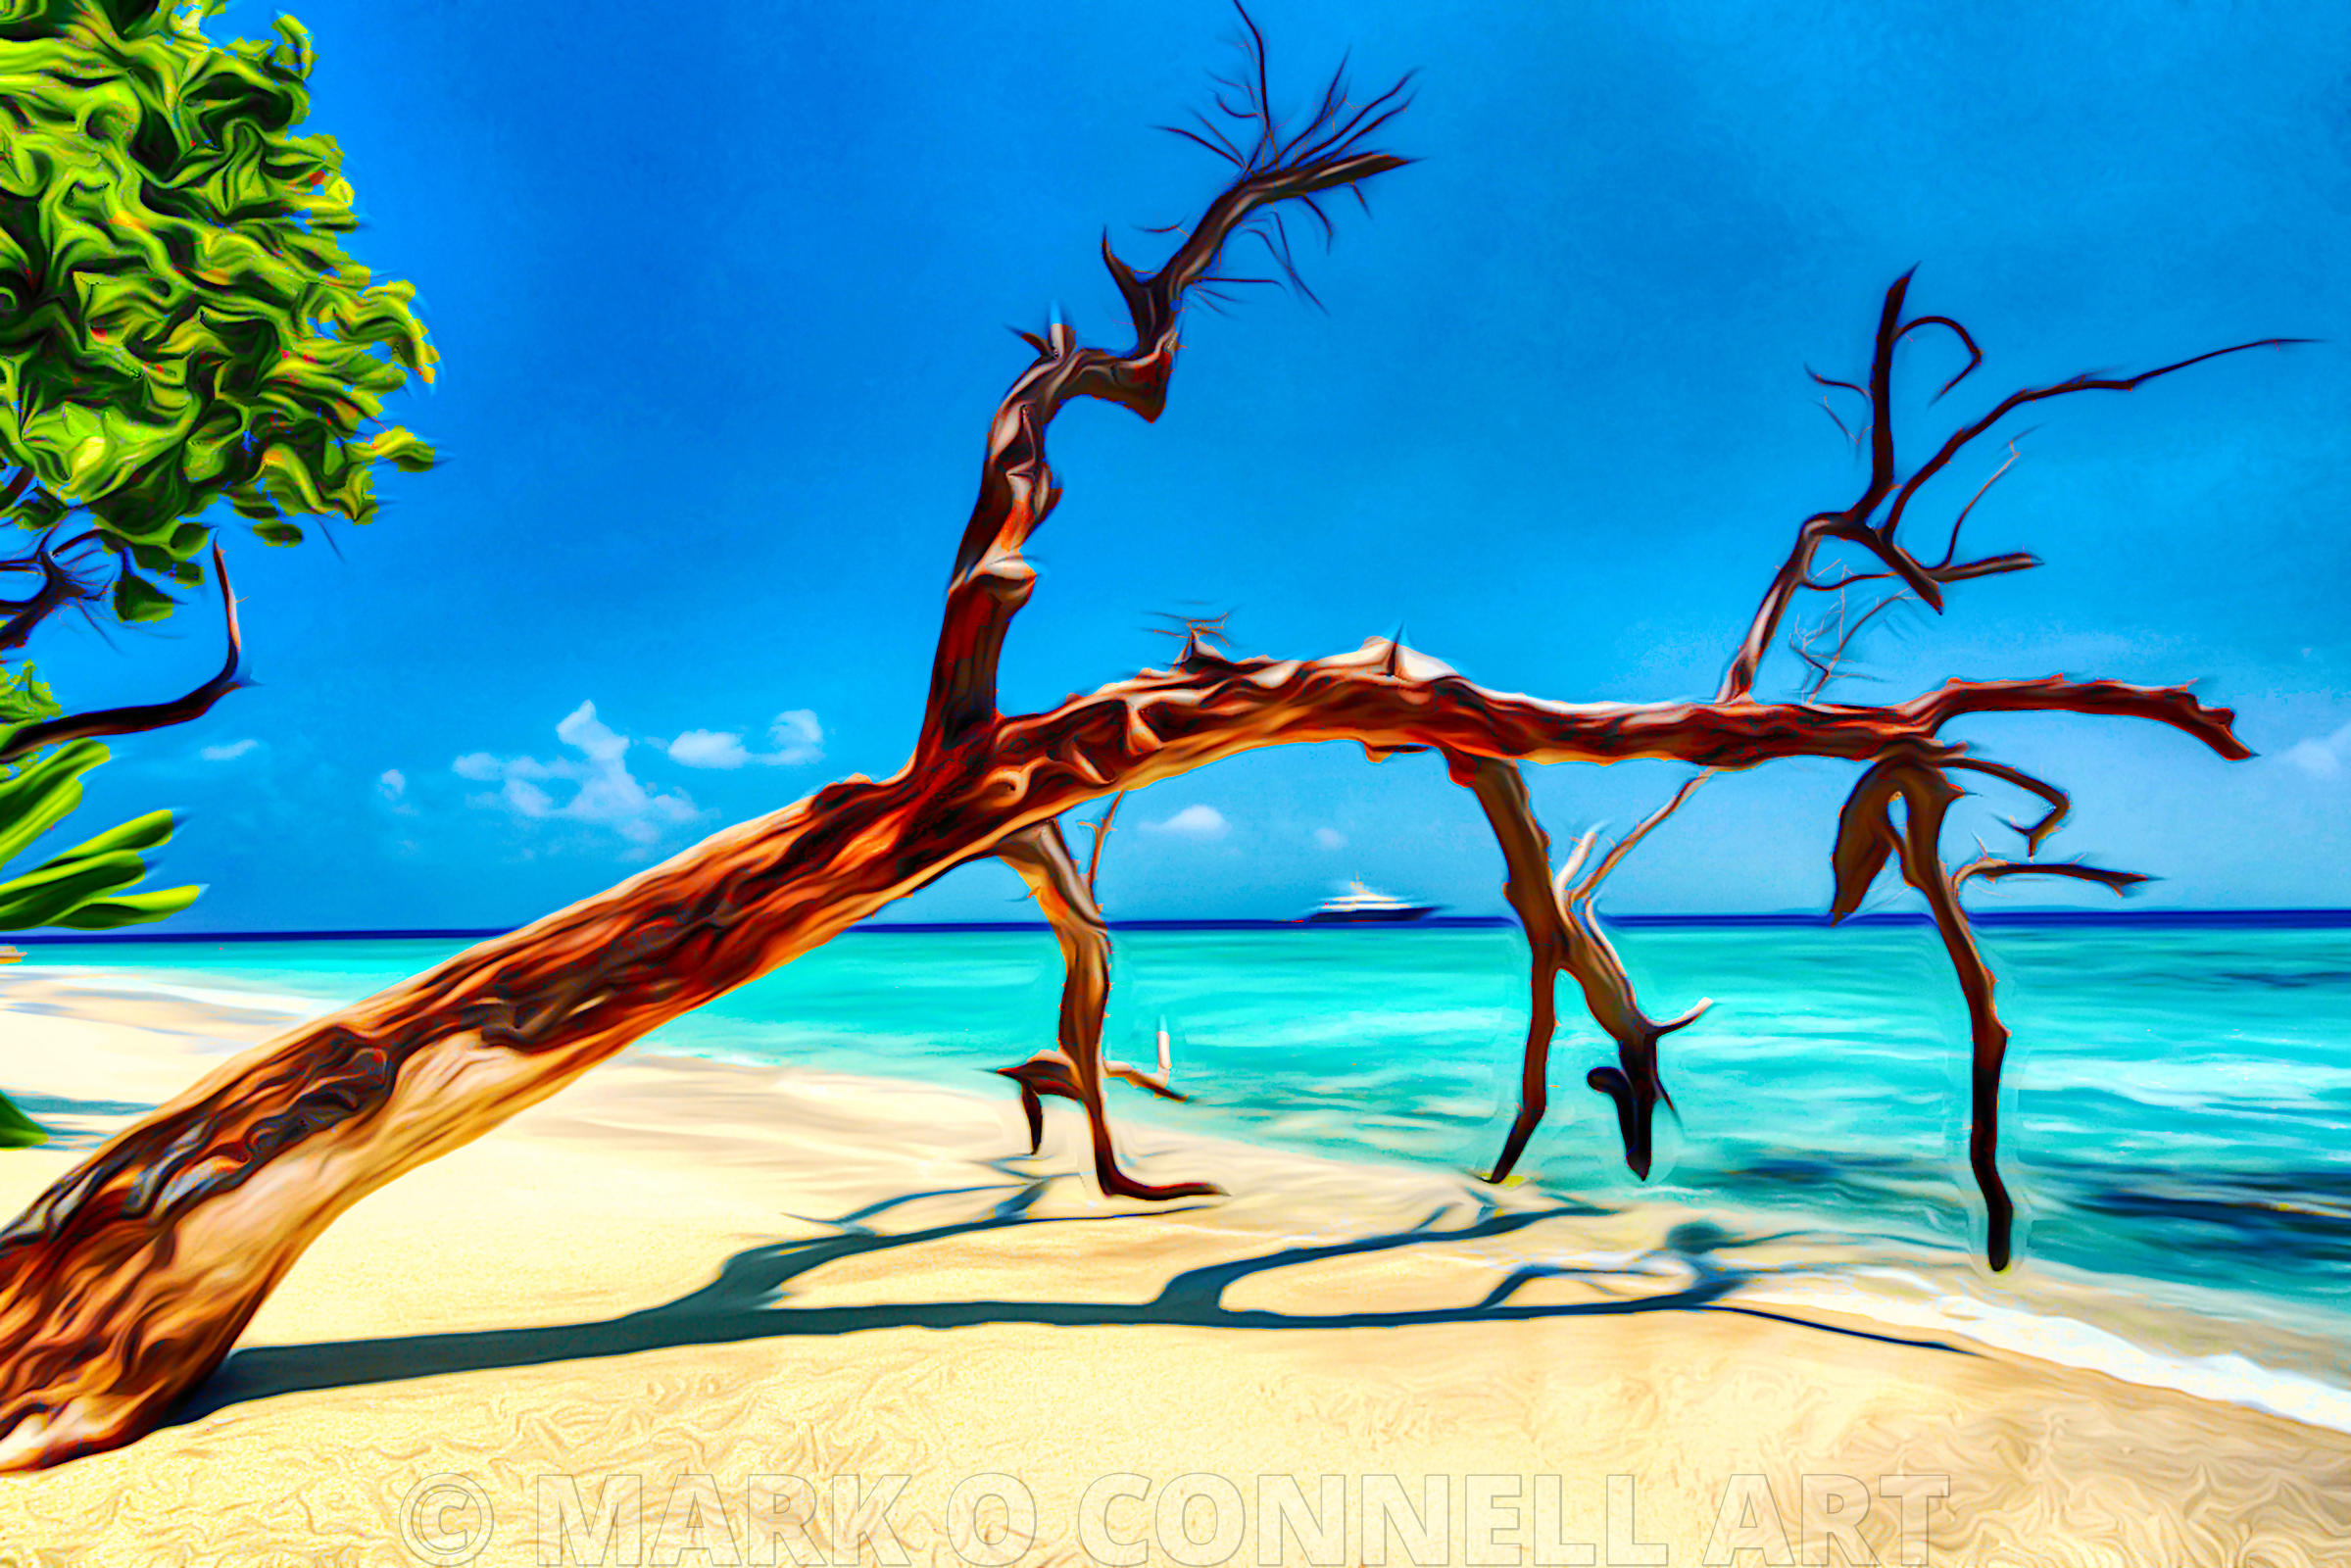 art,airbrush,abstract,painting,superyacht,liberty,maldives,tree,trunk,beach,sand,water,ocean,sea